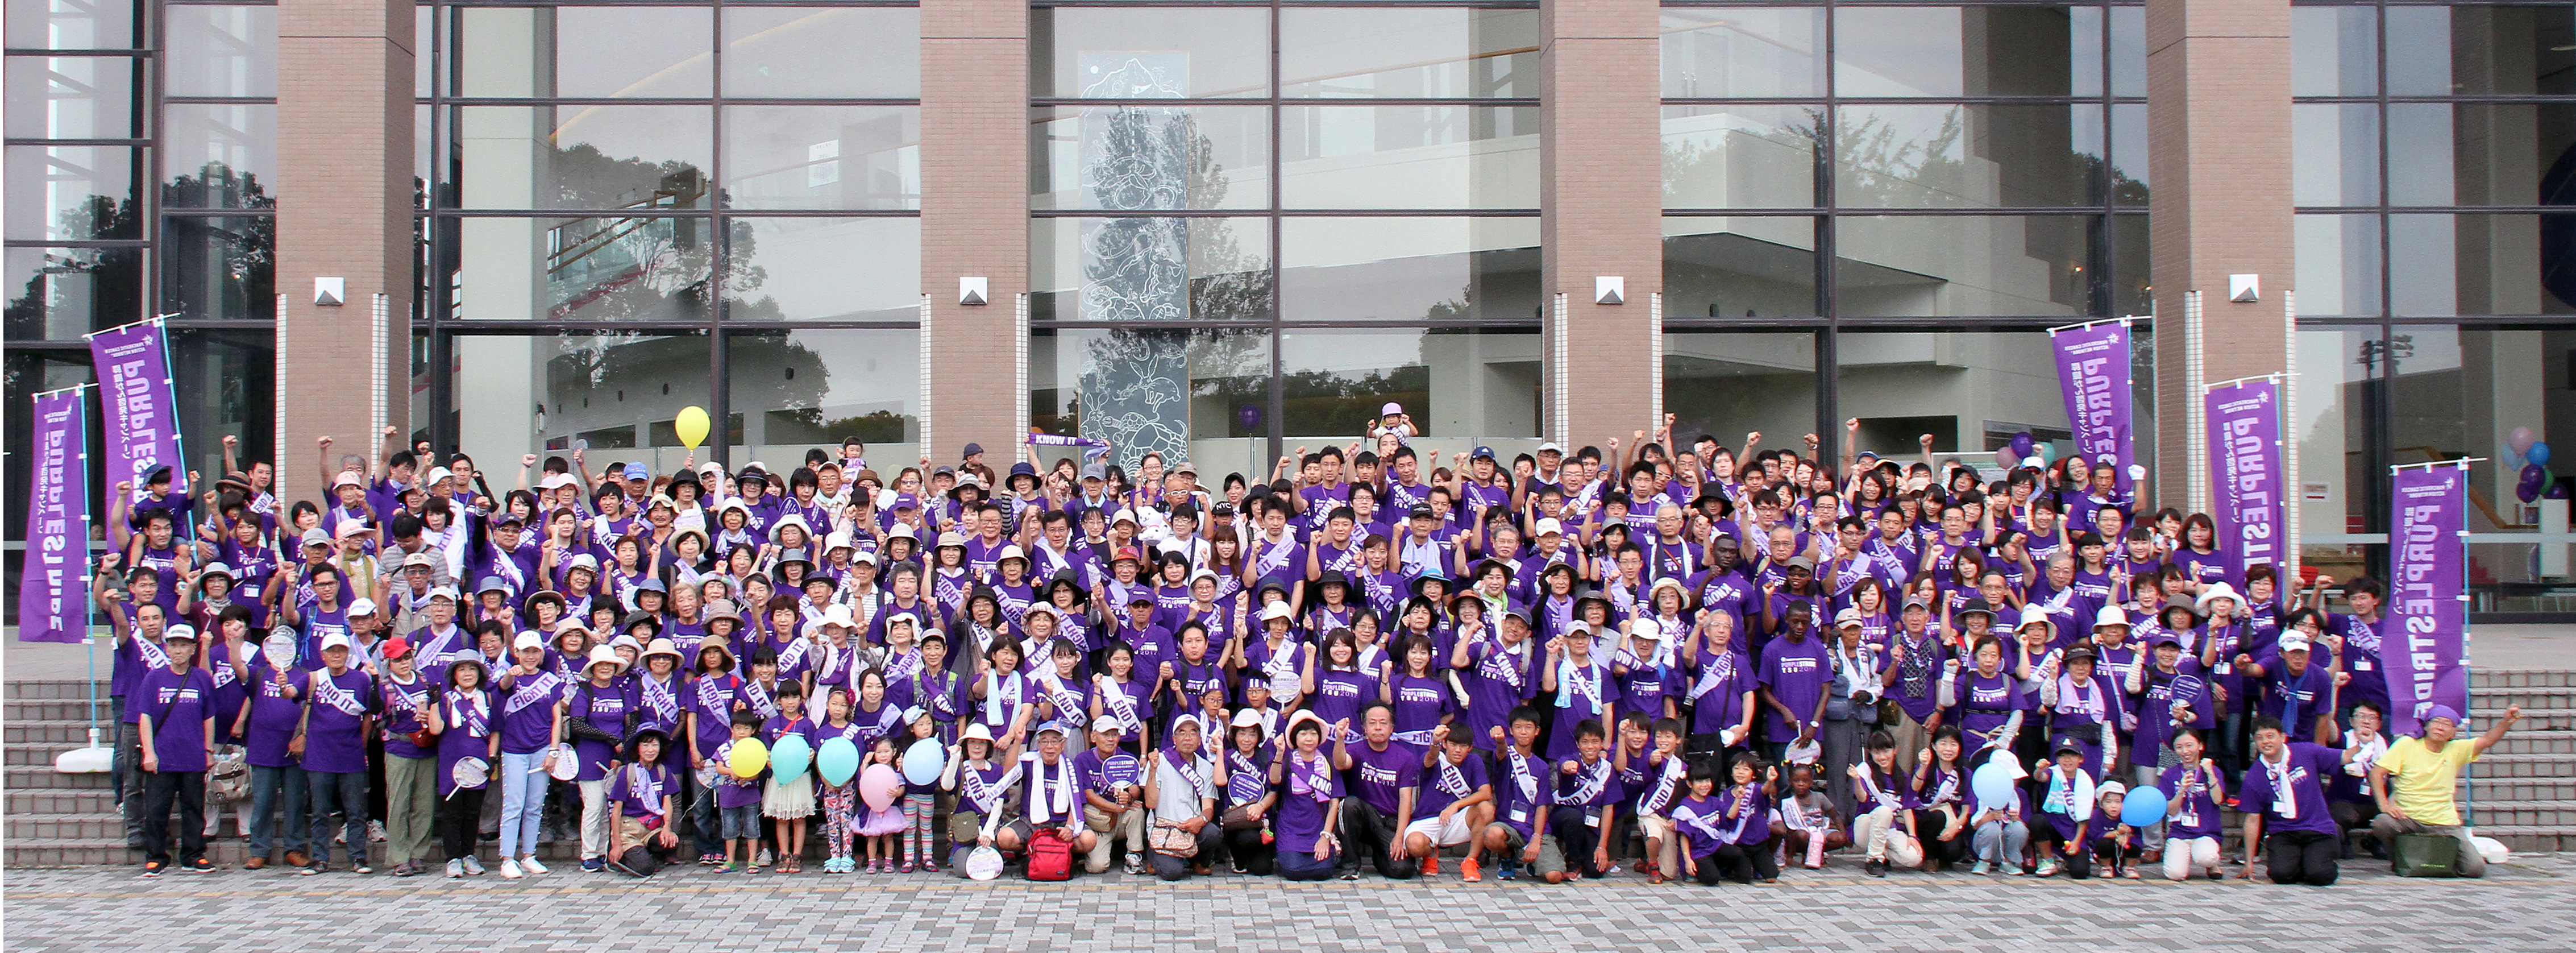 20170910_purplewalk (1)